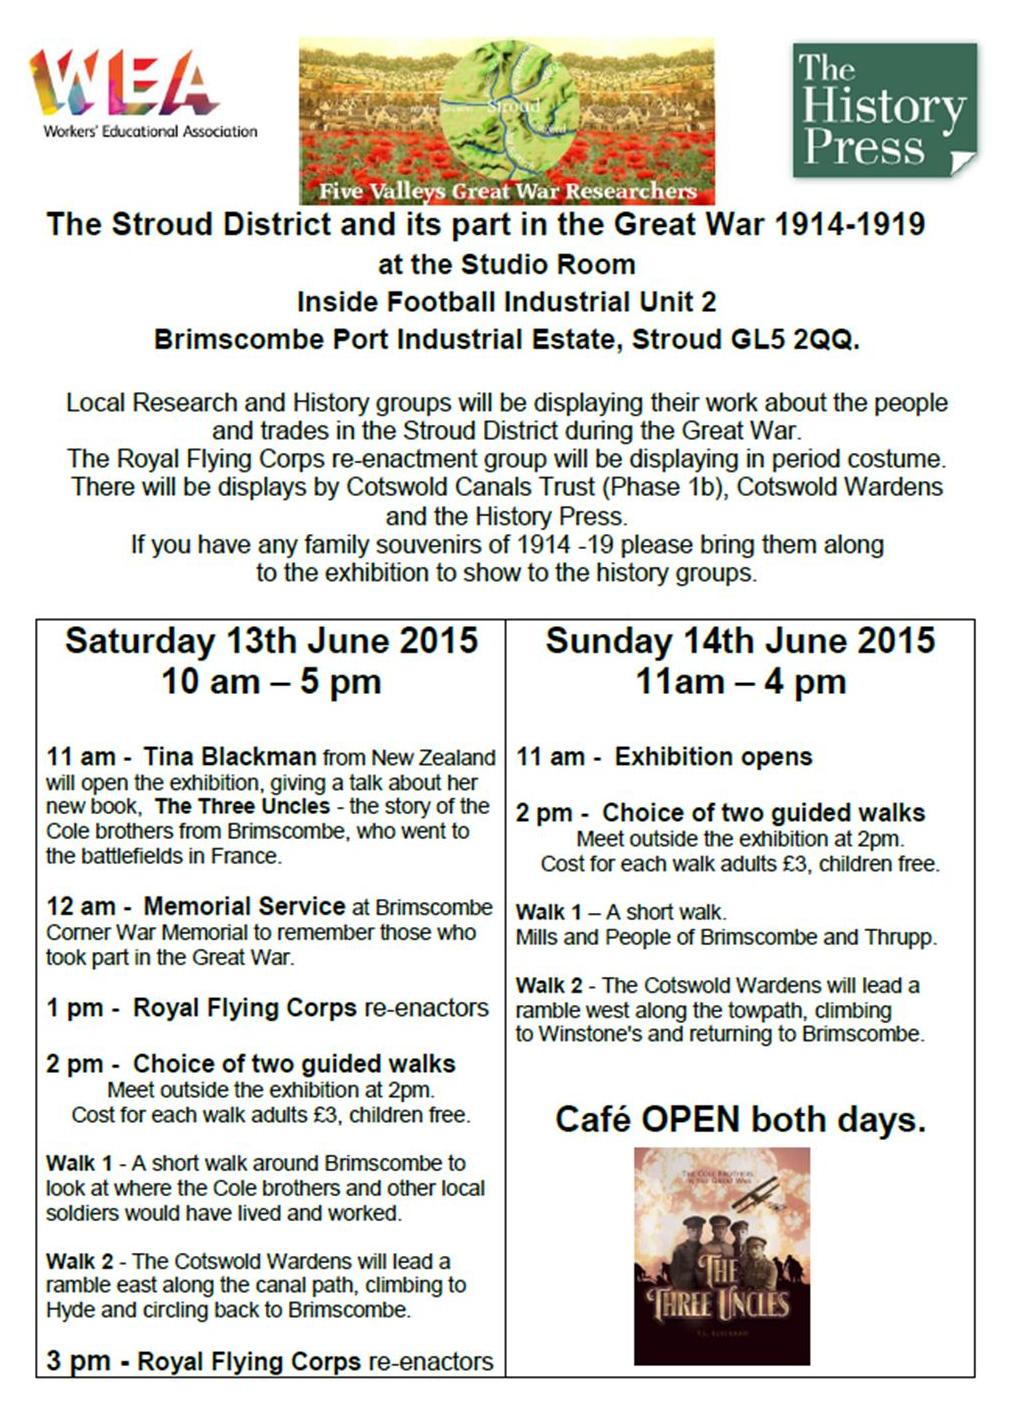 The Stroud District and its part in the Great War 1914-1919 13th and 14th June 2015